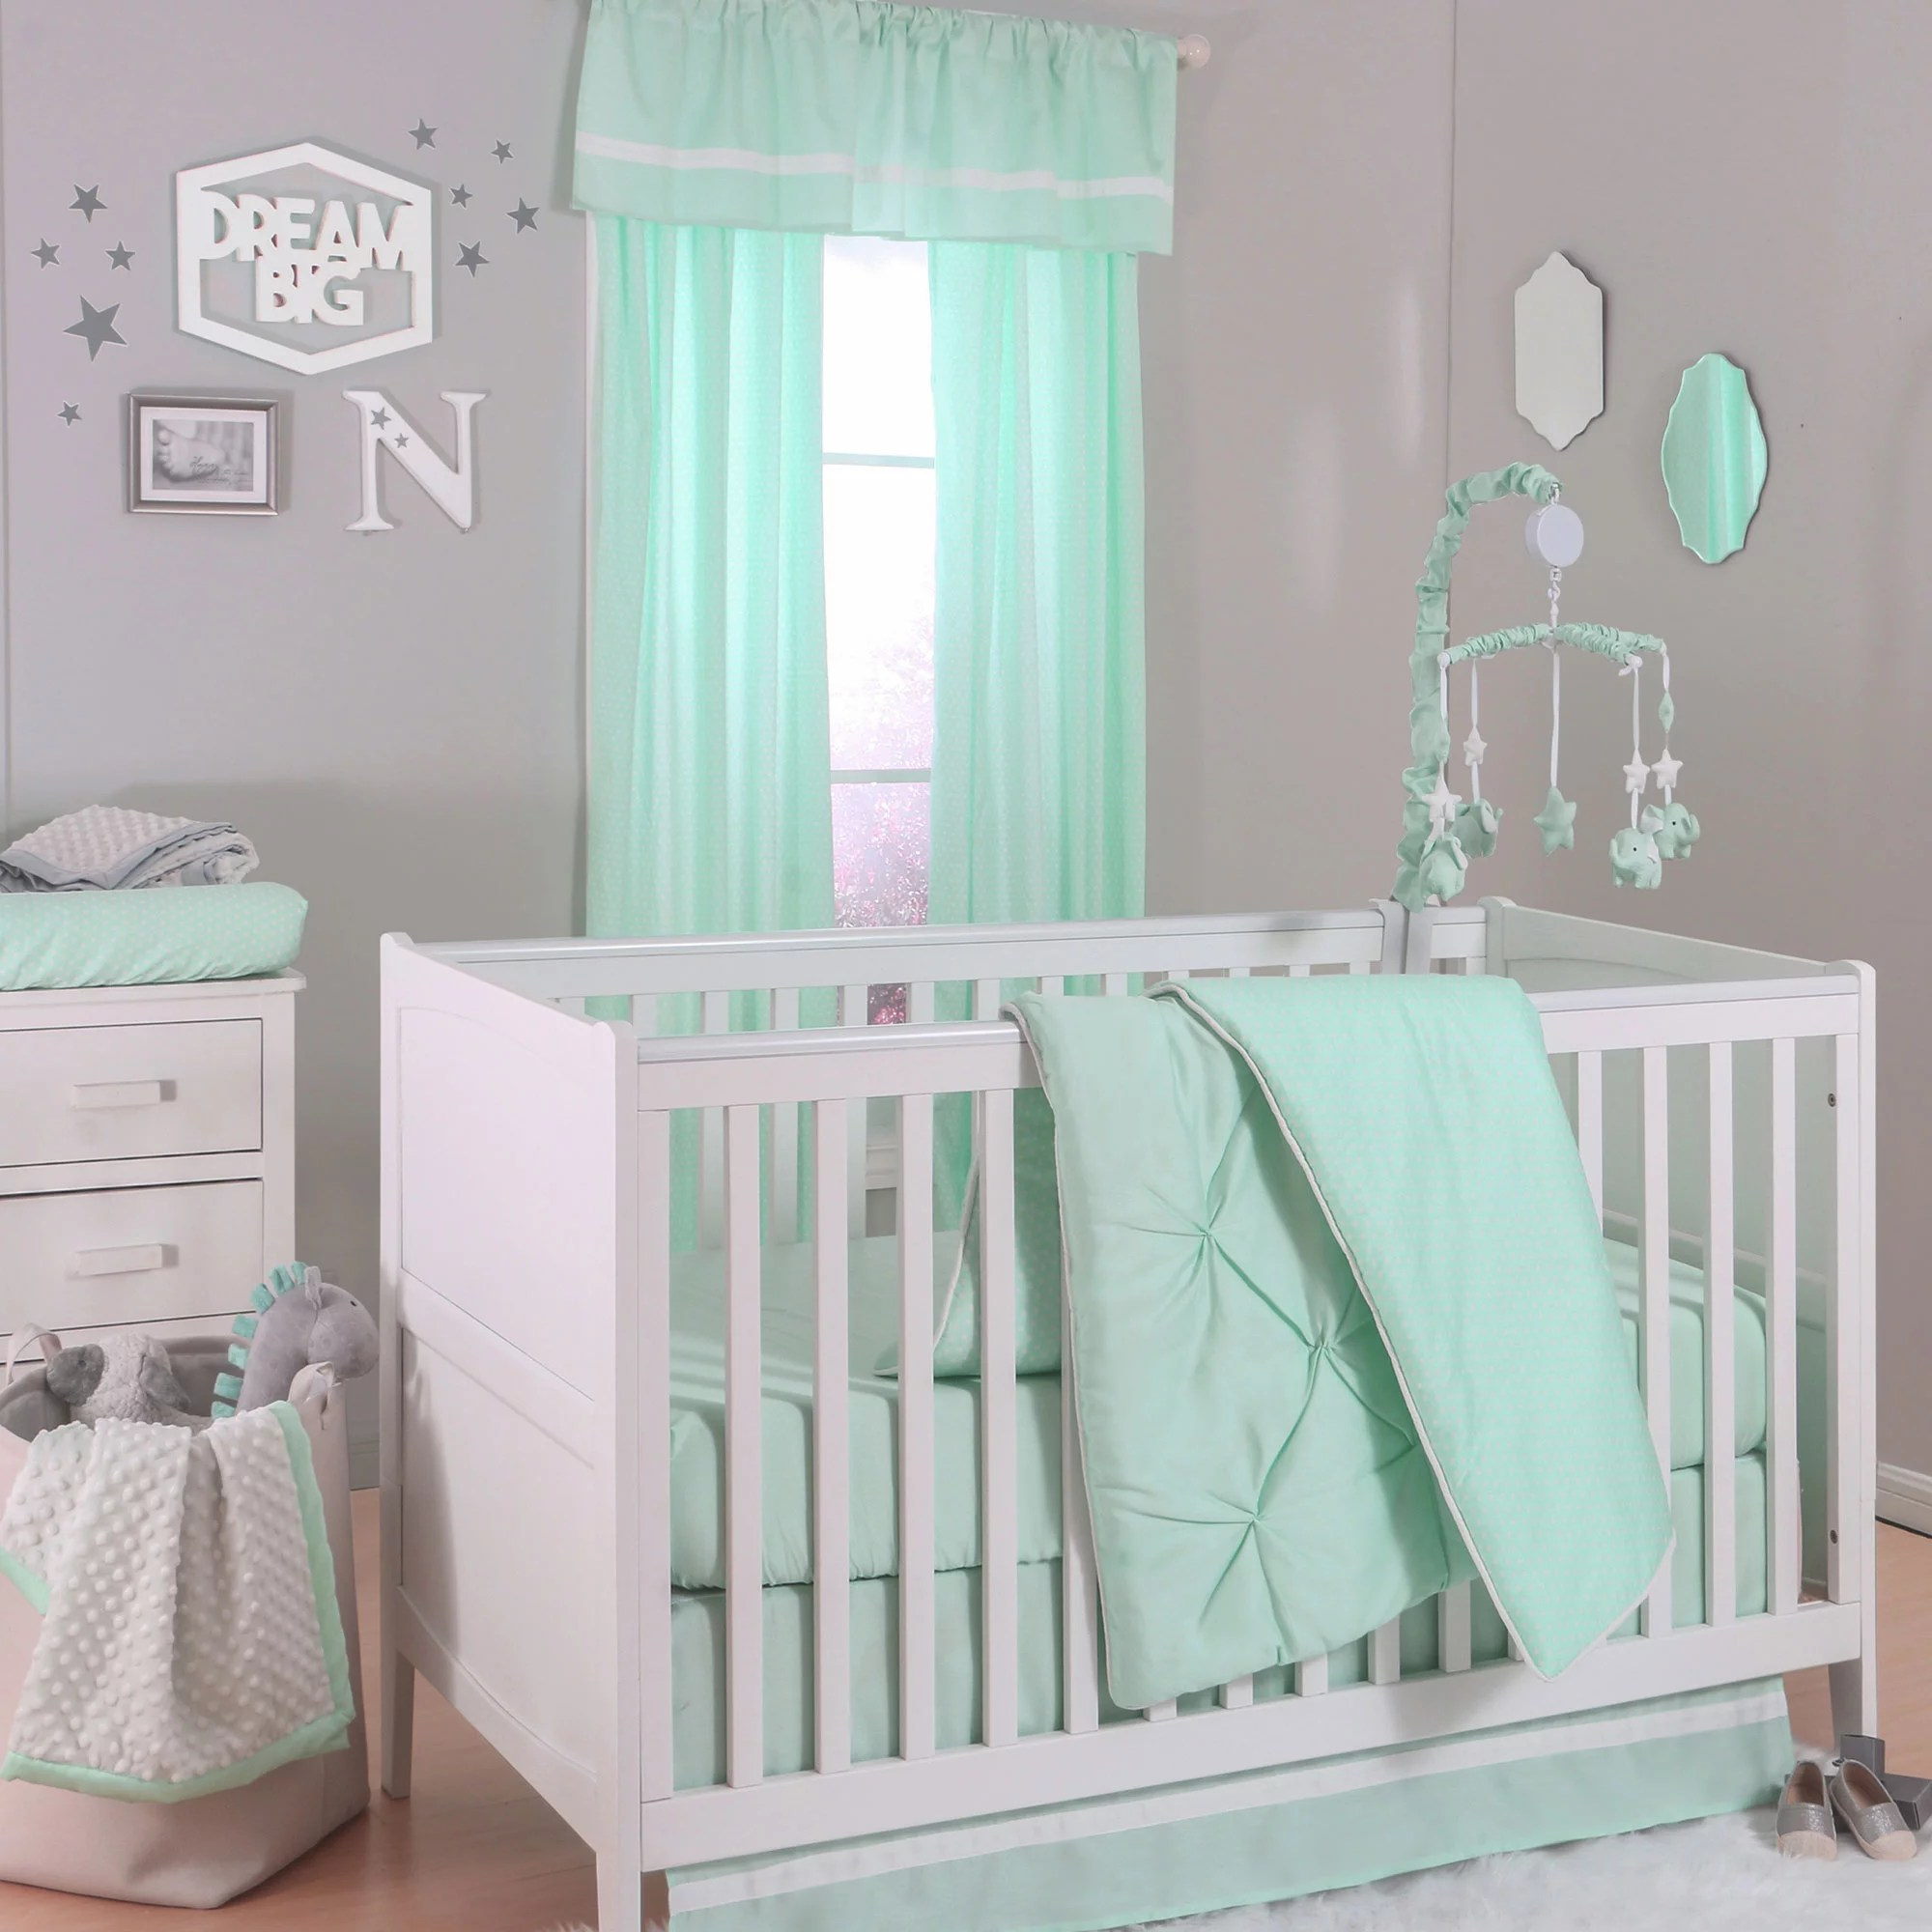 the peanut shell 4 piece baby crib bedding set mint green pintuck and confetti dot prints 100 cotton quilt dust ruffle fitted sheet and mobile